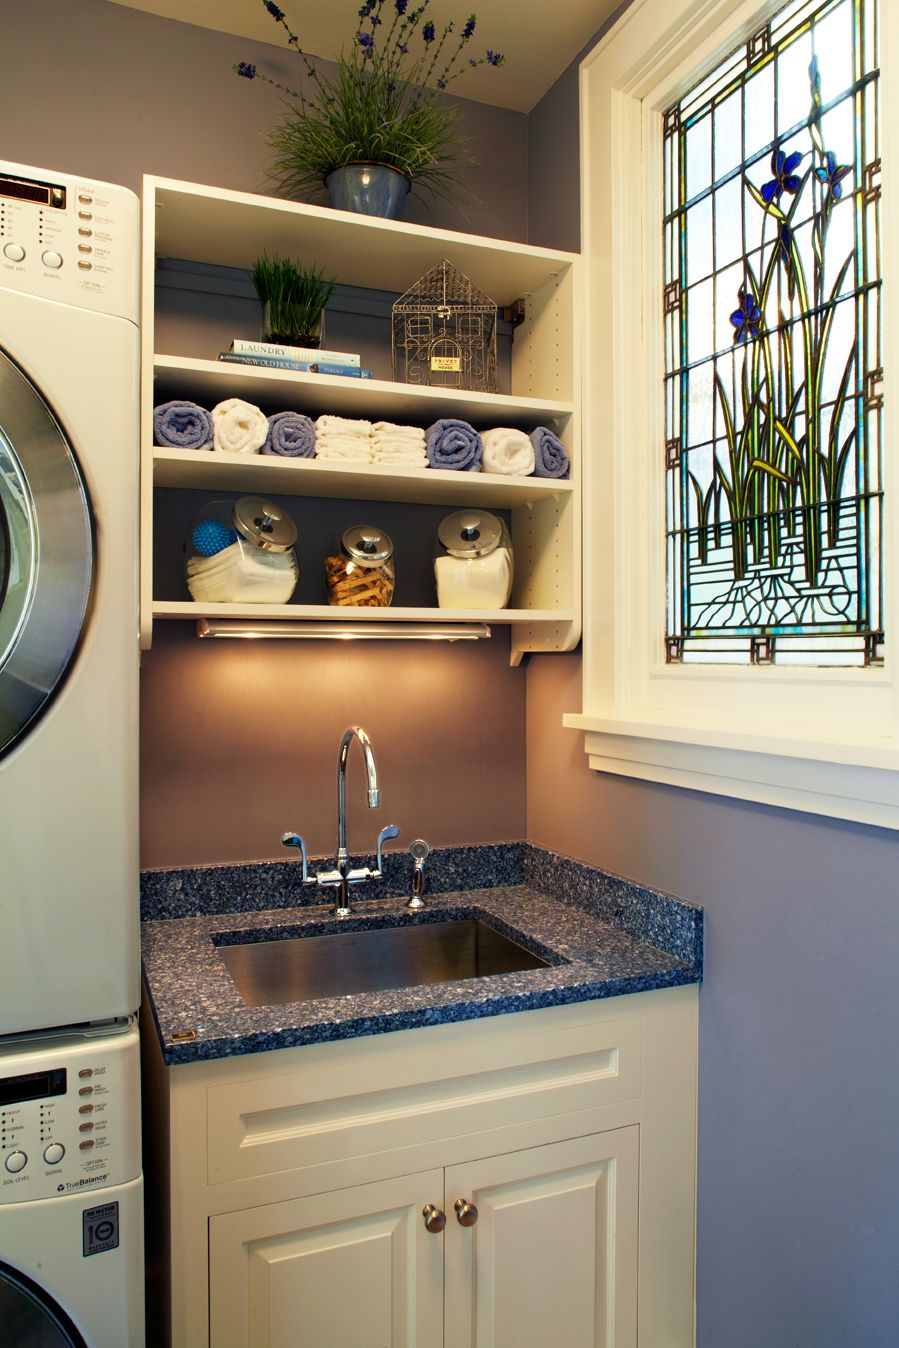 cambria harvest laundry room ideas | Parys from Cambria's Jewel Collection. #MyCambria #Cambria ...